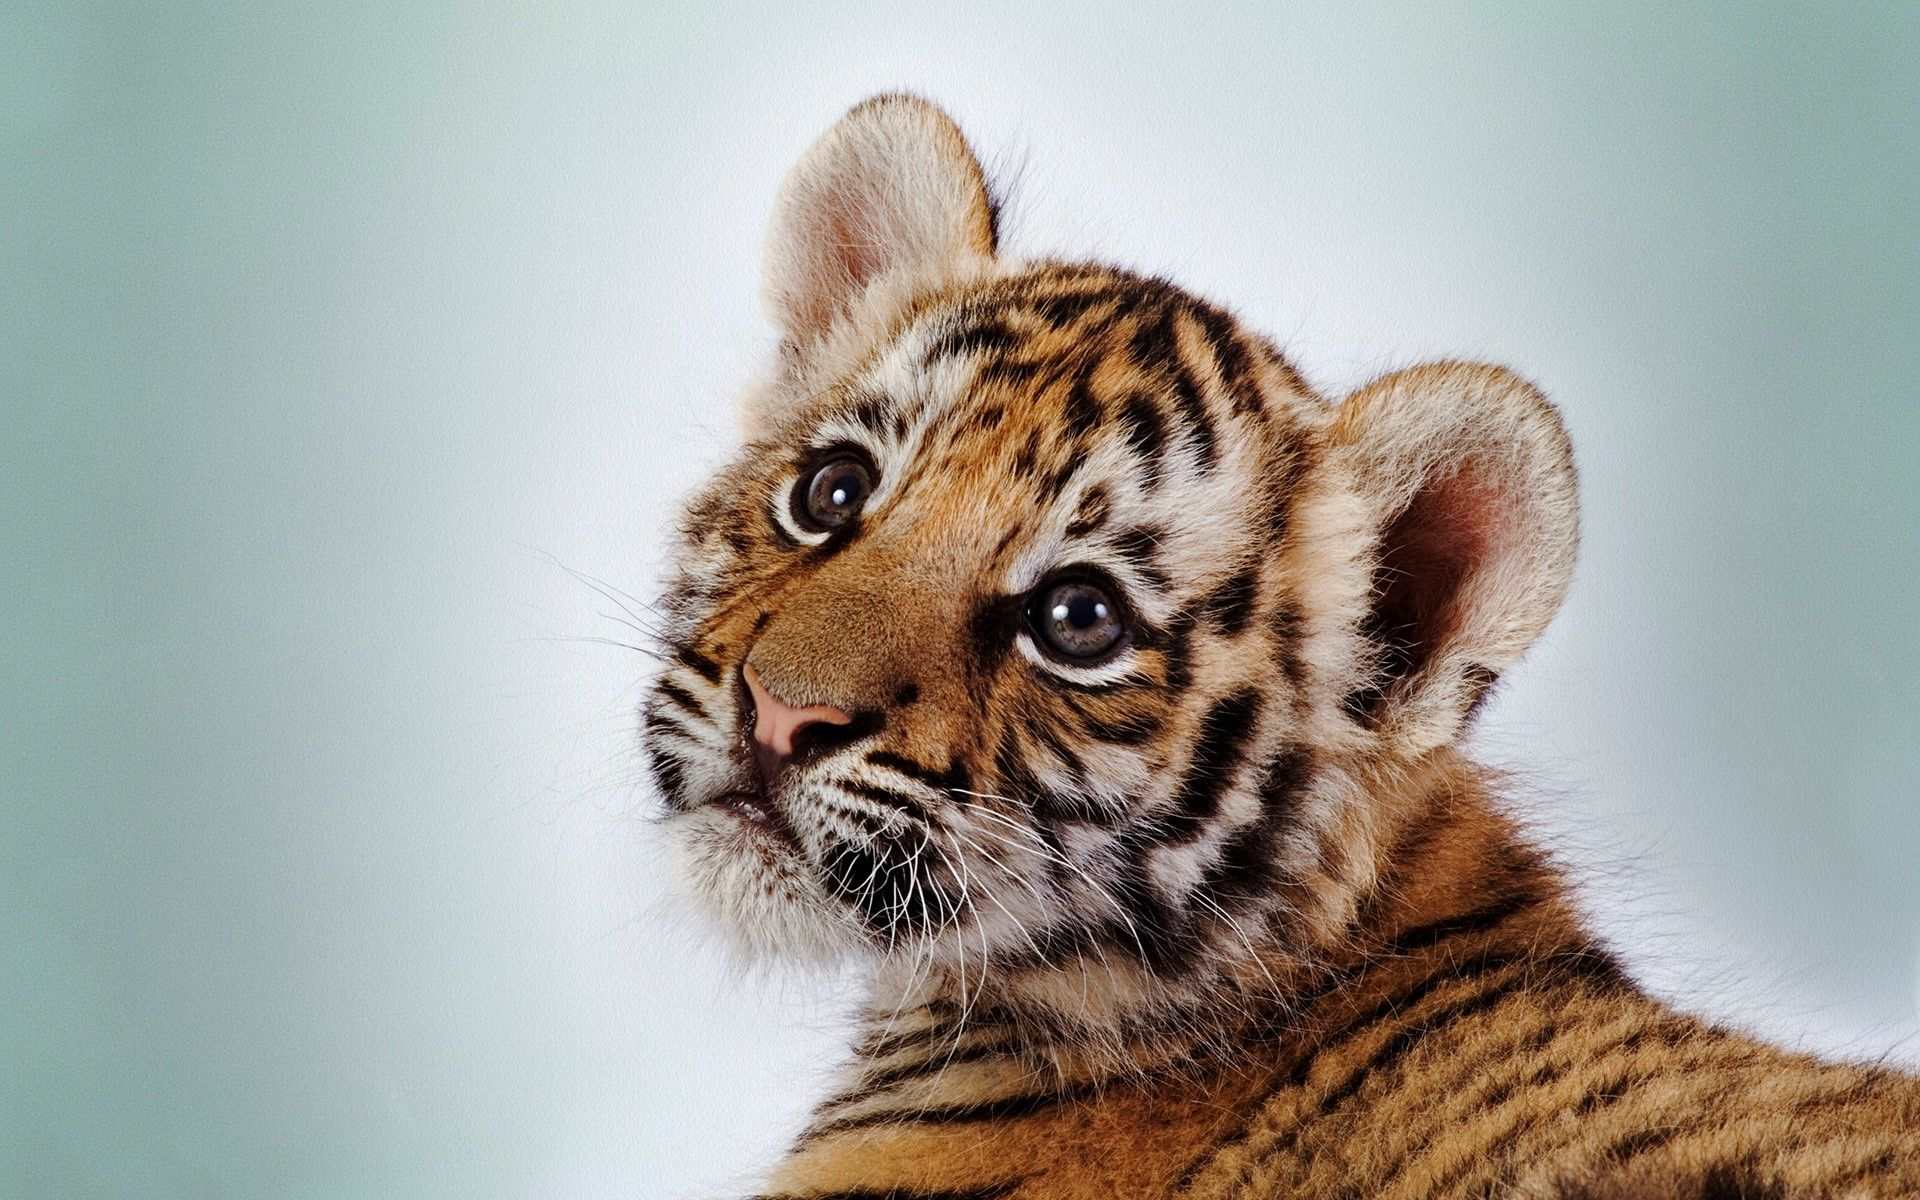 hd images of tiger